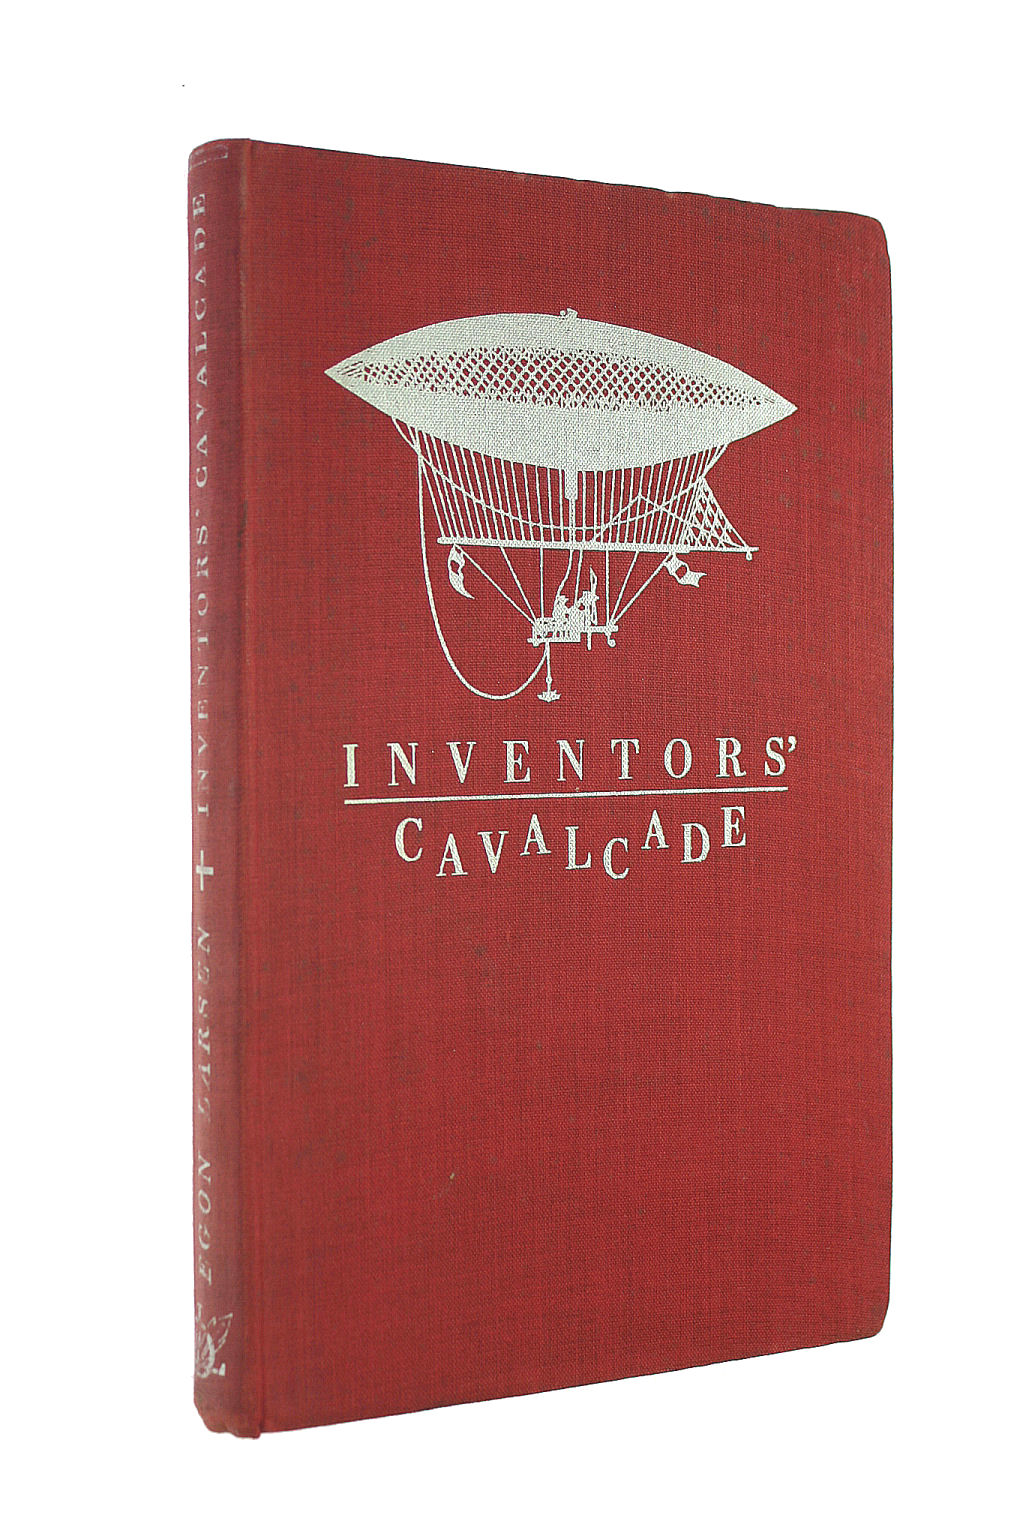 Image for Inventor's cavalcade